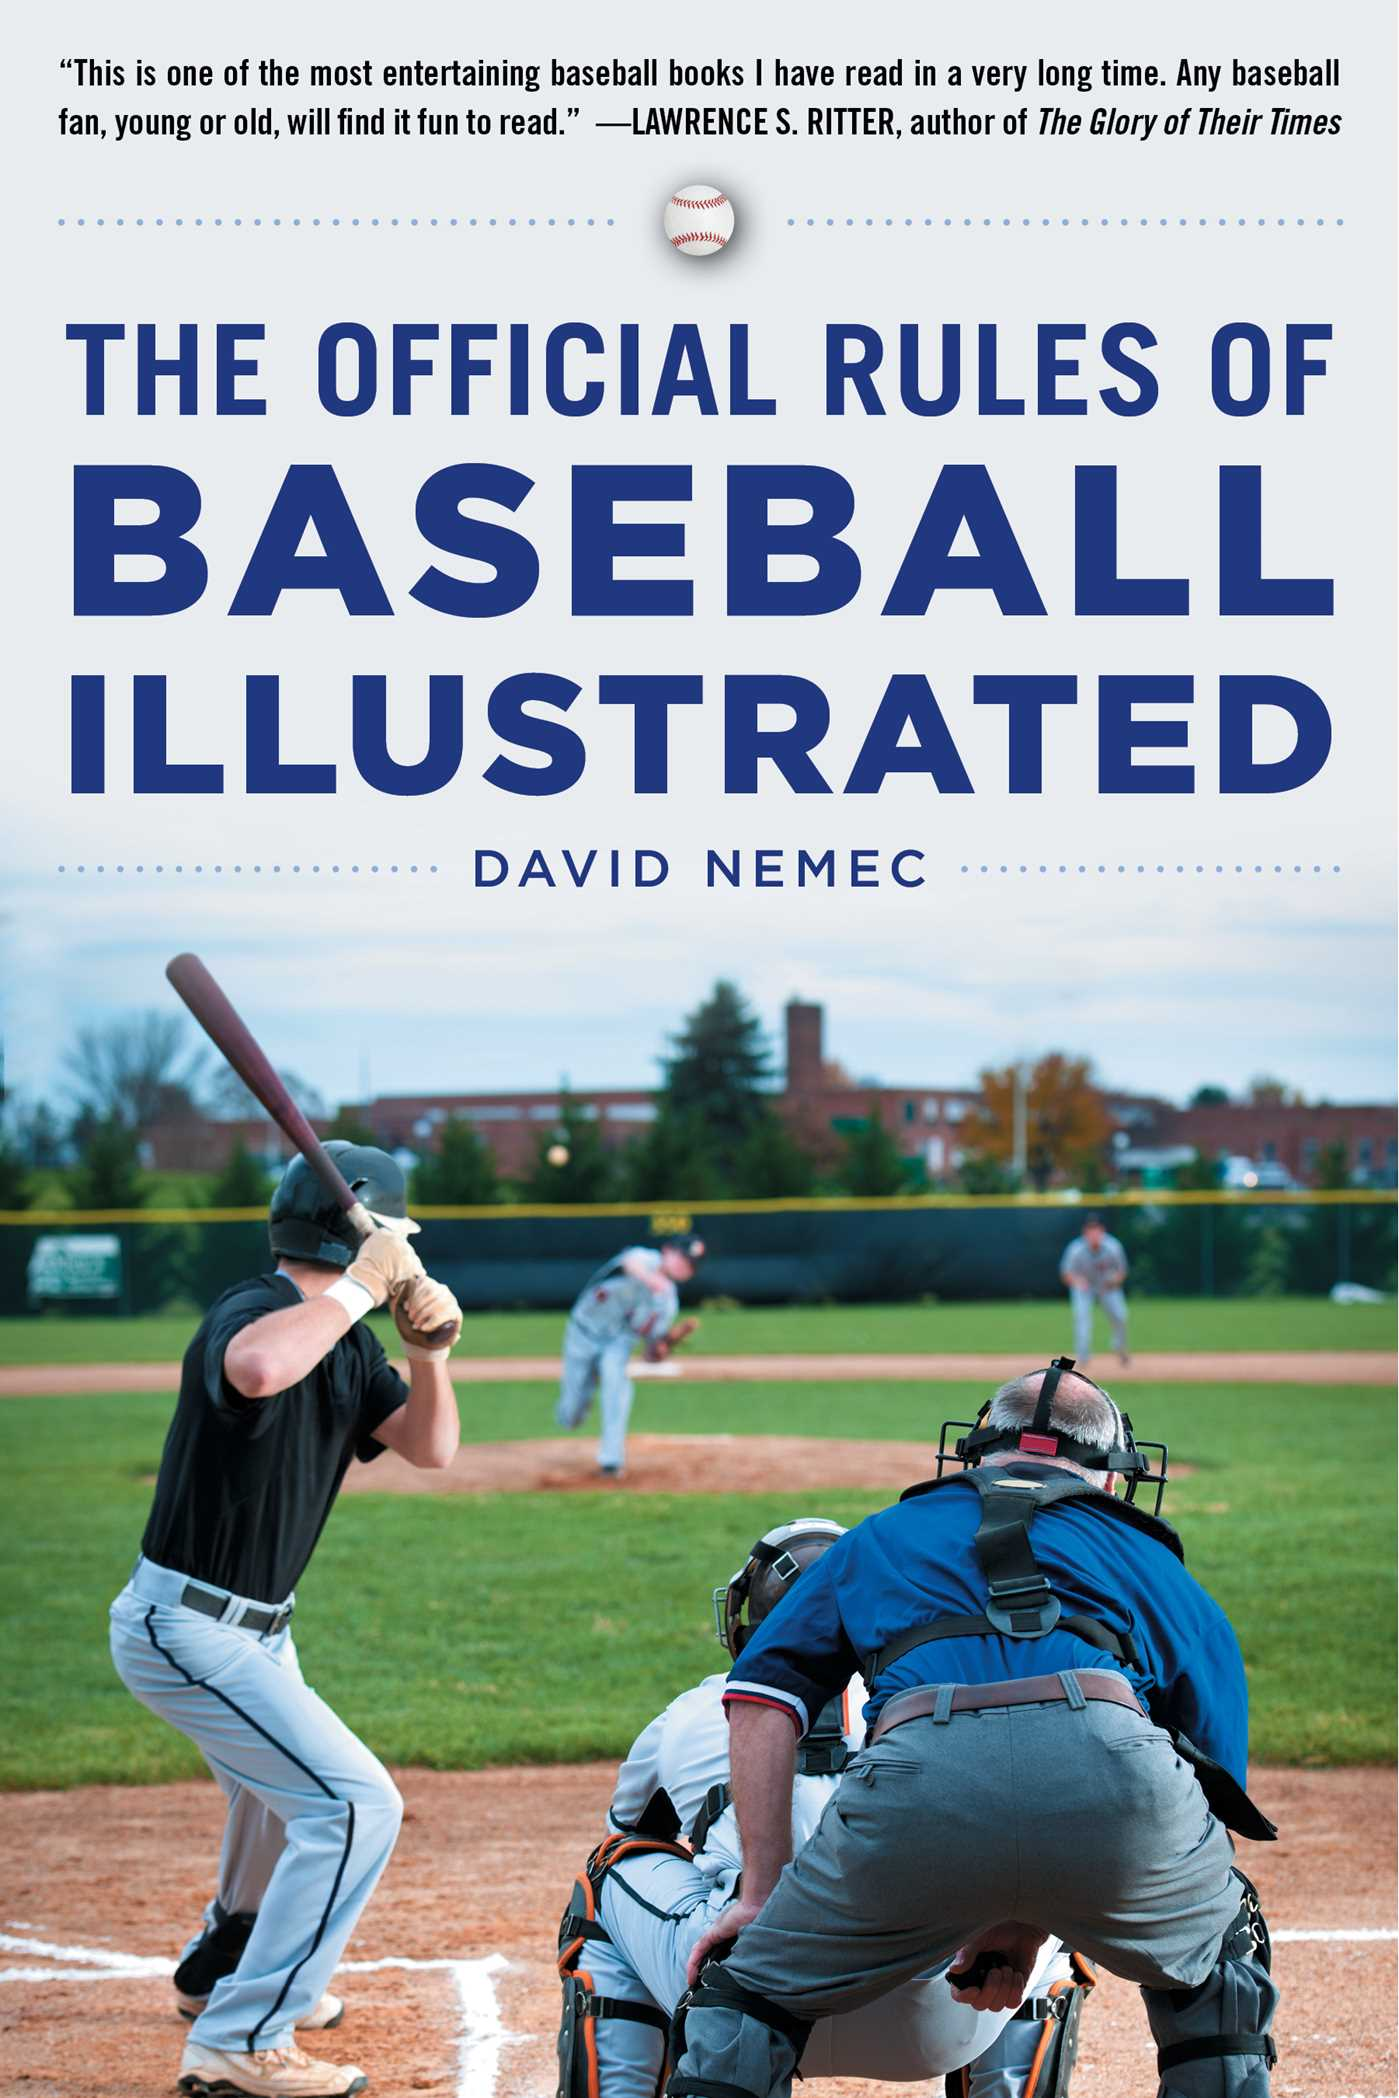 [PDF] [EPUB] The Official Rules of Baseball Illustrated: An Irreverent Look at the Rules of Baseball and How They Came to Be What They Are Today Download by David Nemec